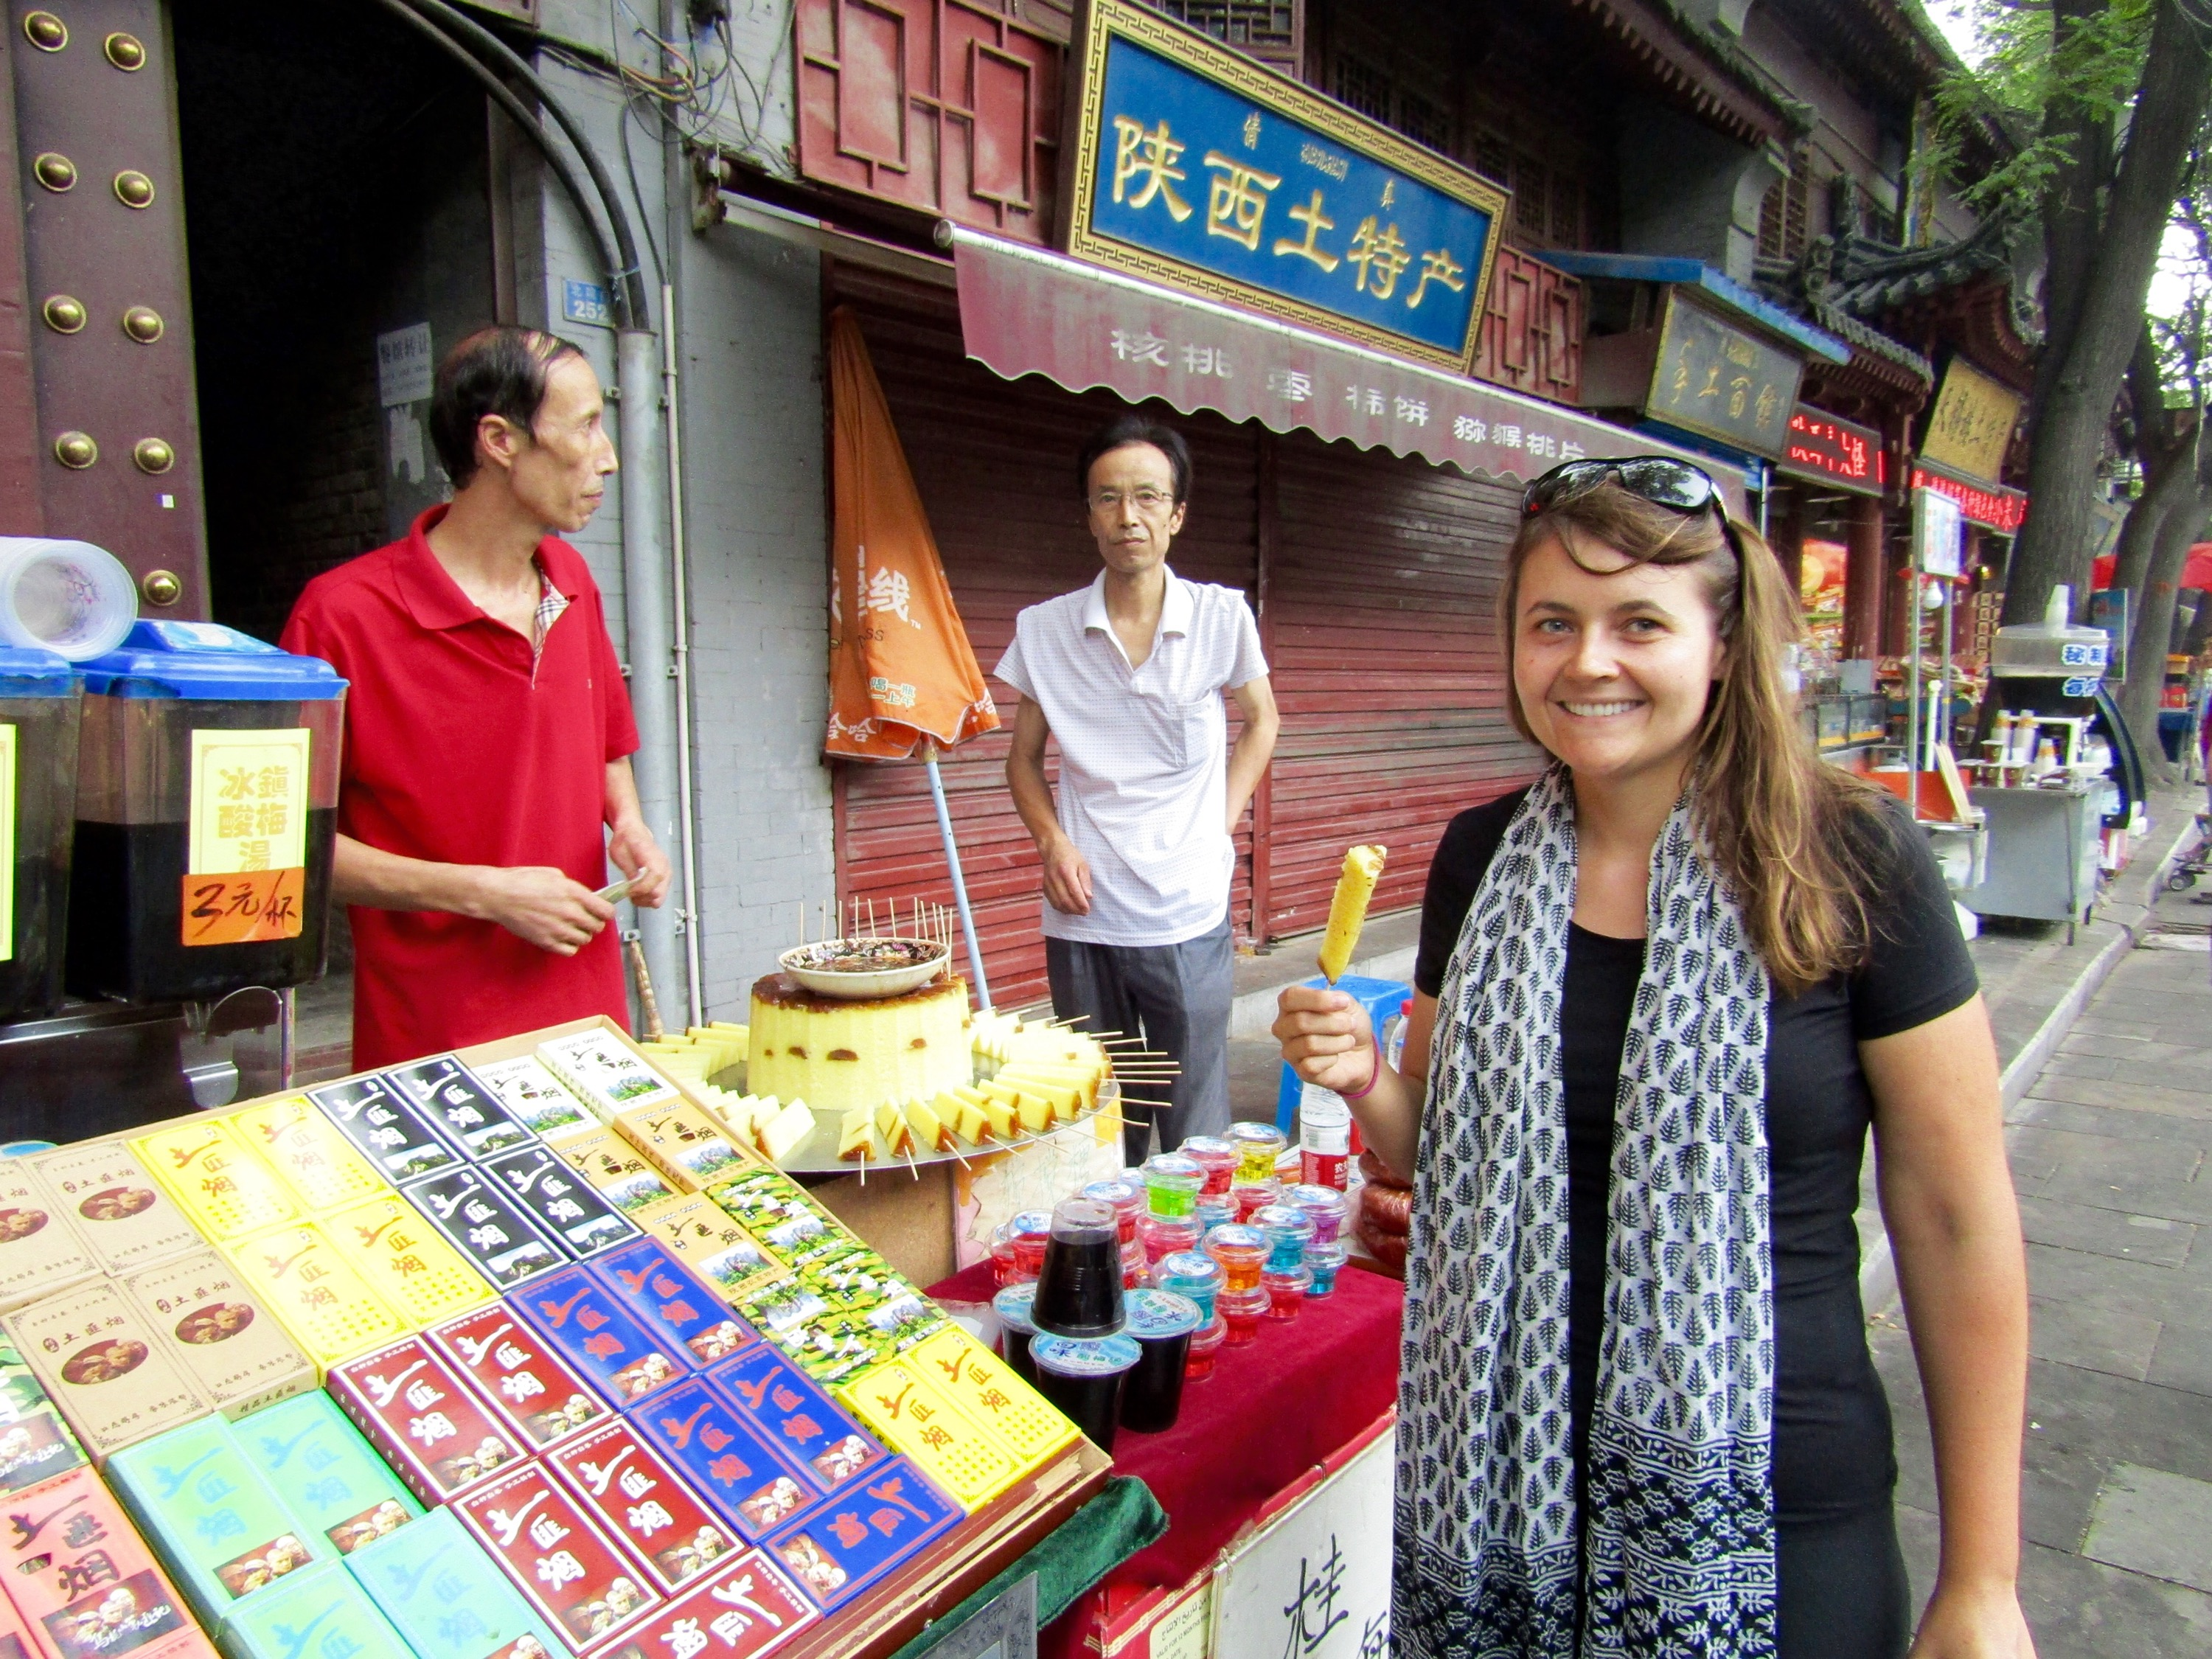 Xi'an's lively Muslim Quarter is full of both local specialties and traditional Muslim snacks. This sweet treat looked like yellow cake or pineapple on a stick, but was actually yellow glutinous rice mixed with honey and coated in a syrup. It tasted a lot better than it sounds!